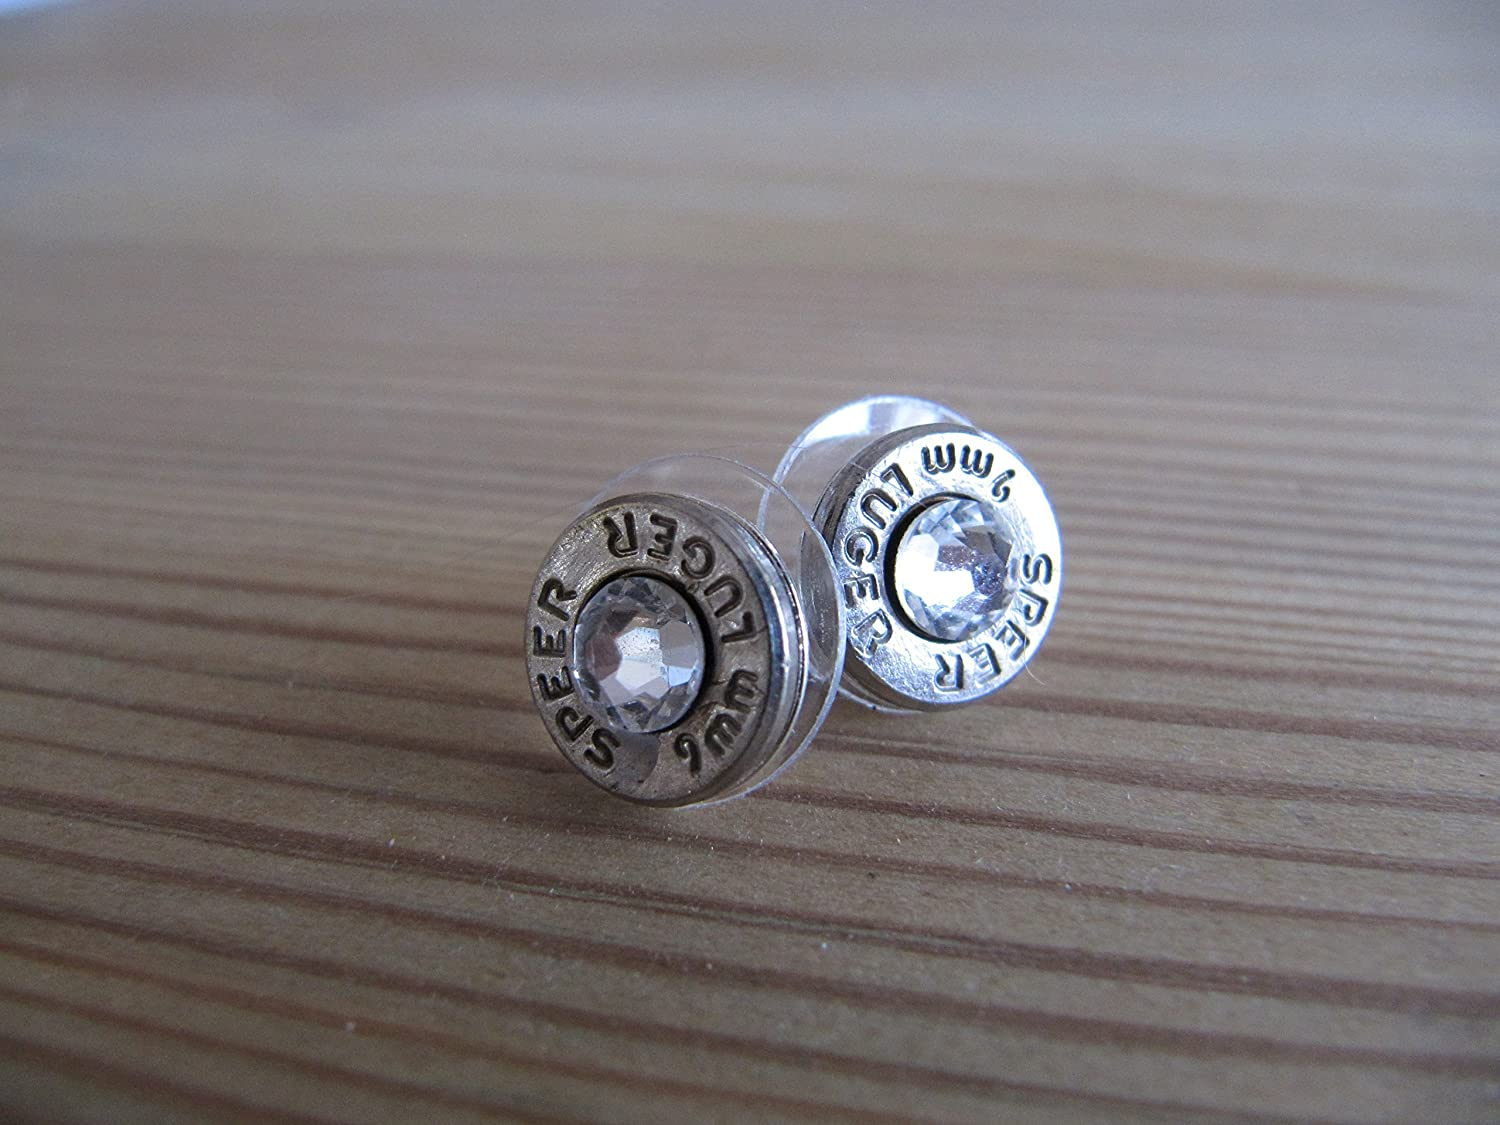 9mm Earrings with Swarovski Crystal Accents - Bullet Jewelry- Small Bullet Earring - Crystal Bullet Earrings